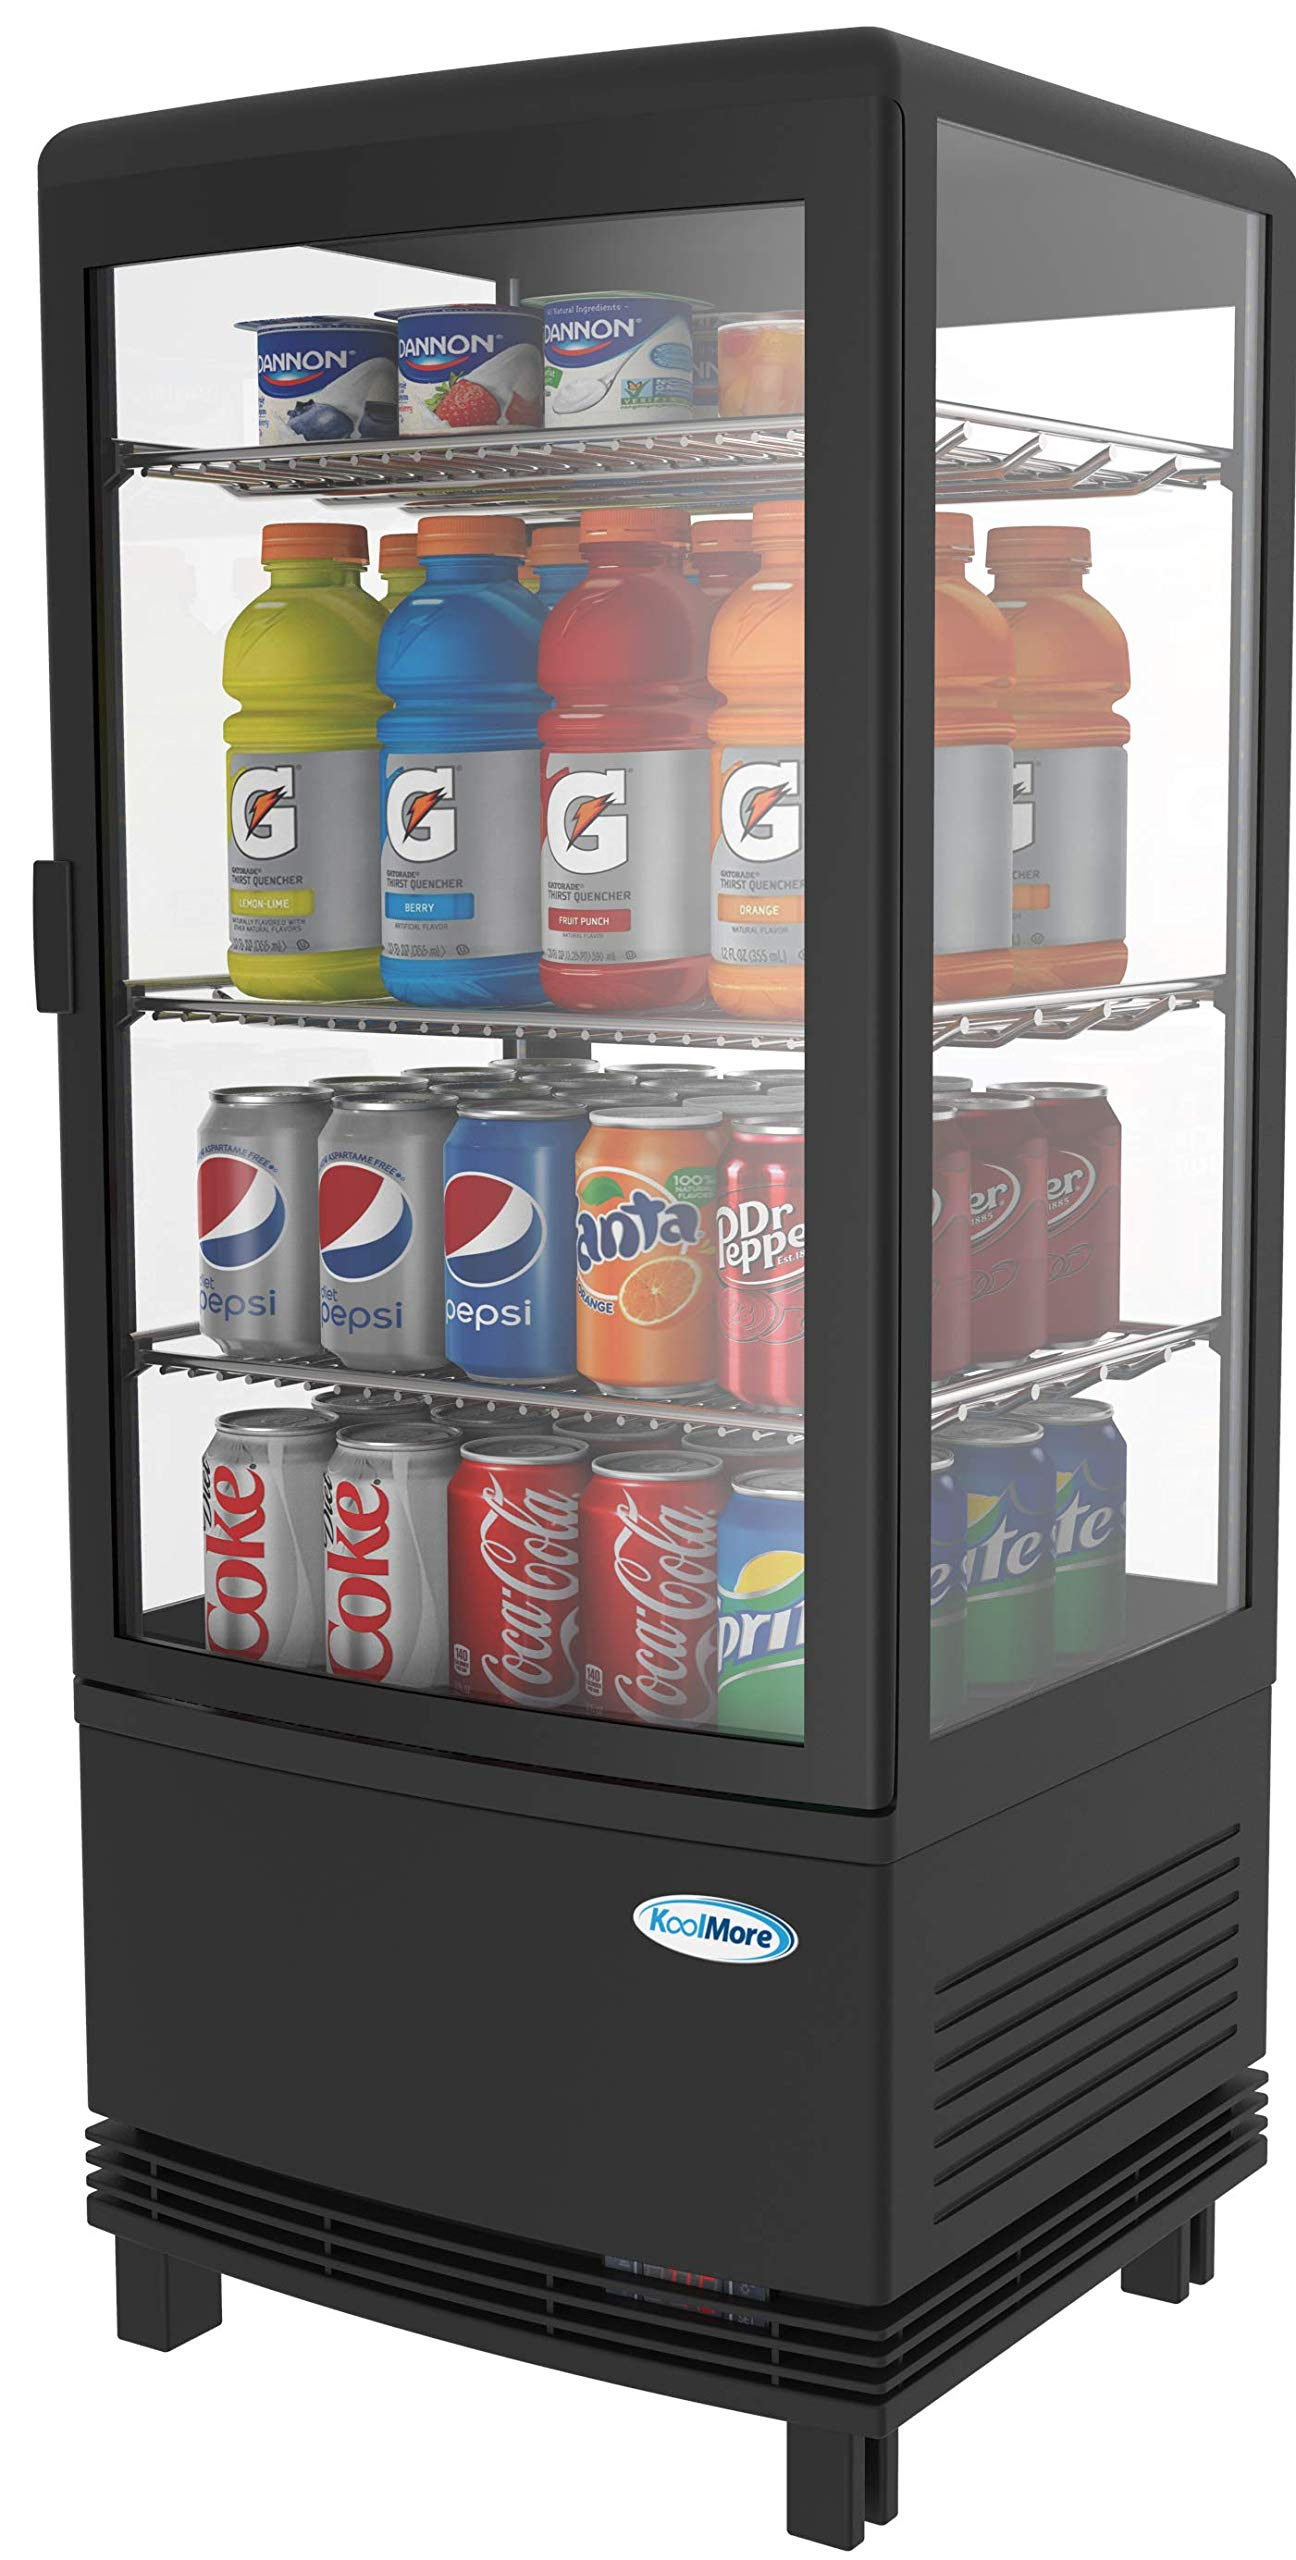 KoolMore Countertop Refrigerator Display Case Commercial Beverage Cooler with LED Lighting - 3 cu. ft Capacity by KoolMore (Image #1)